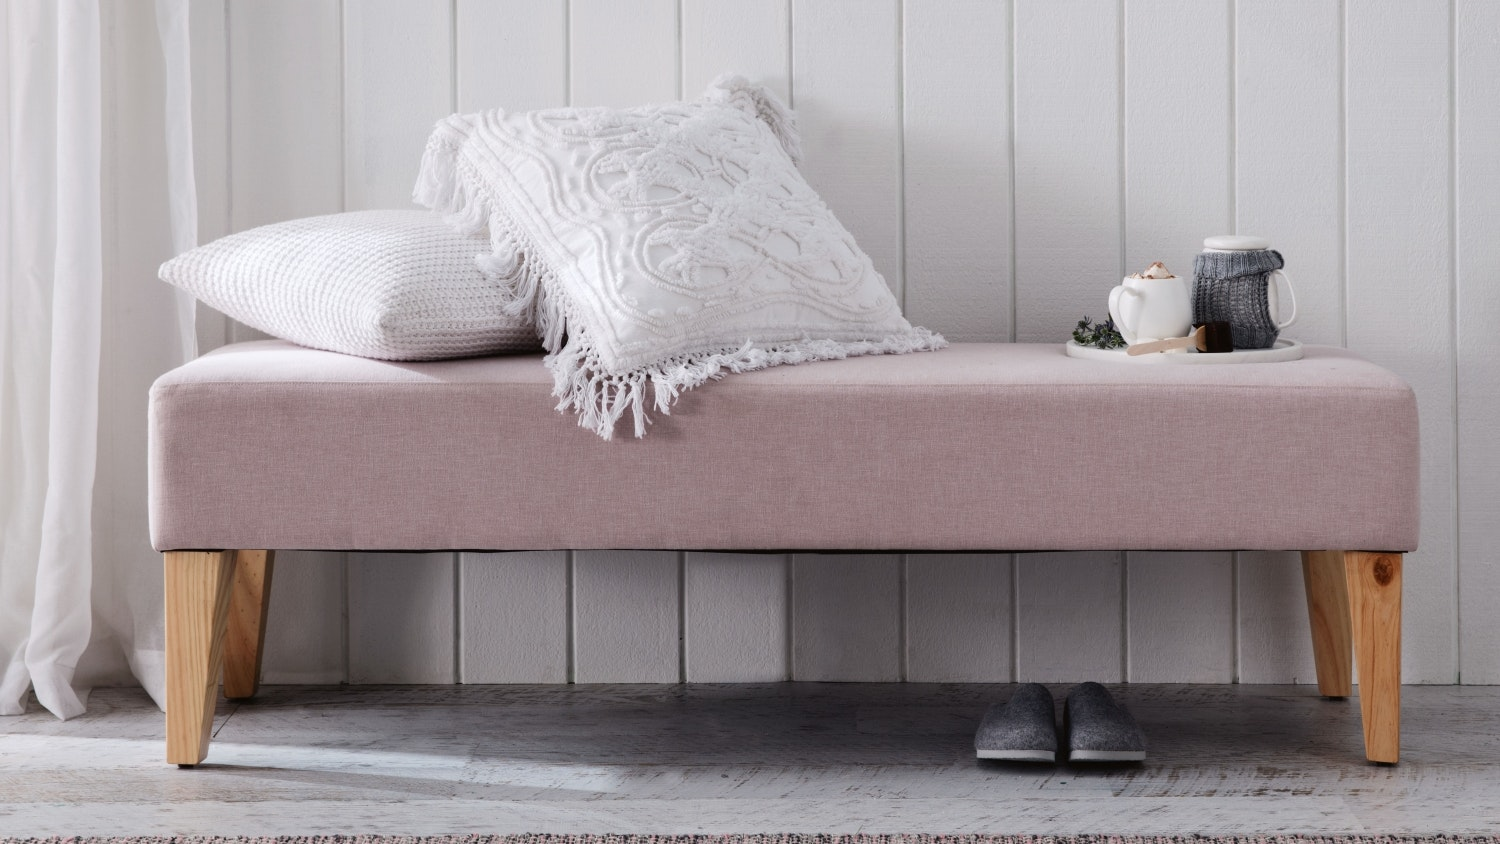 Harlow Bed Bench